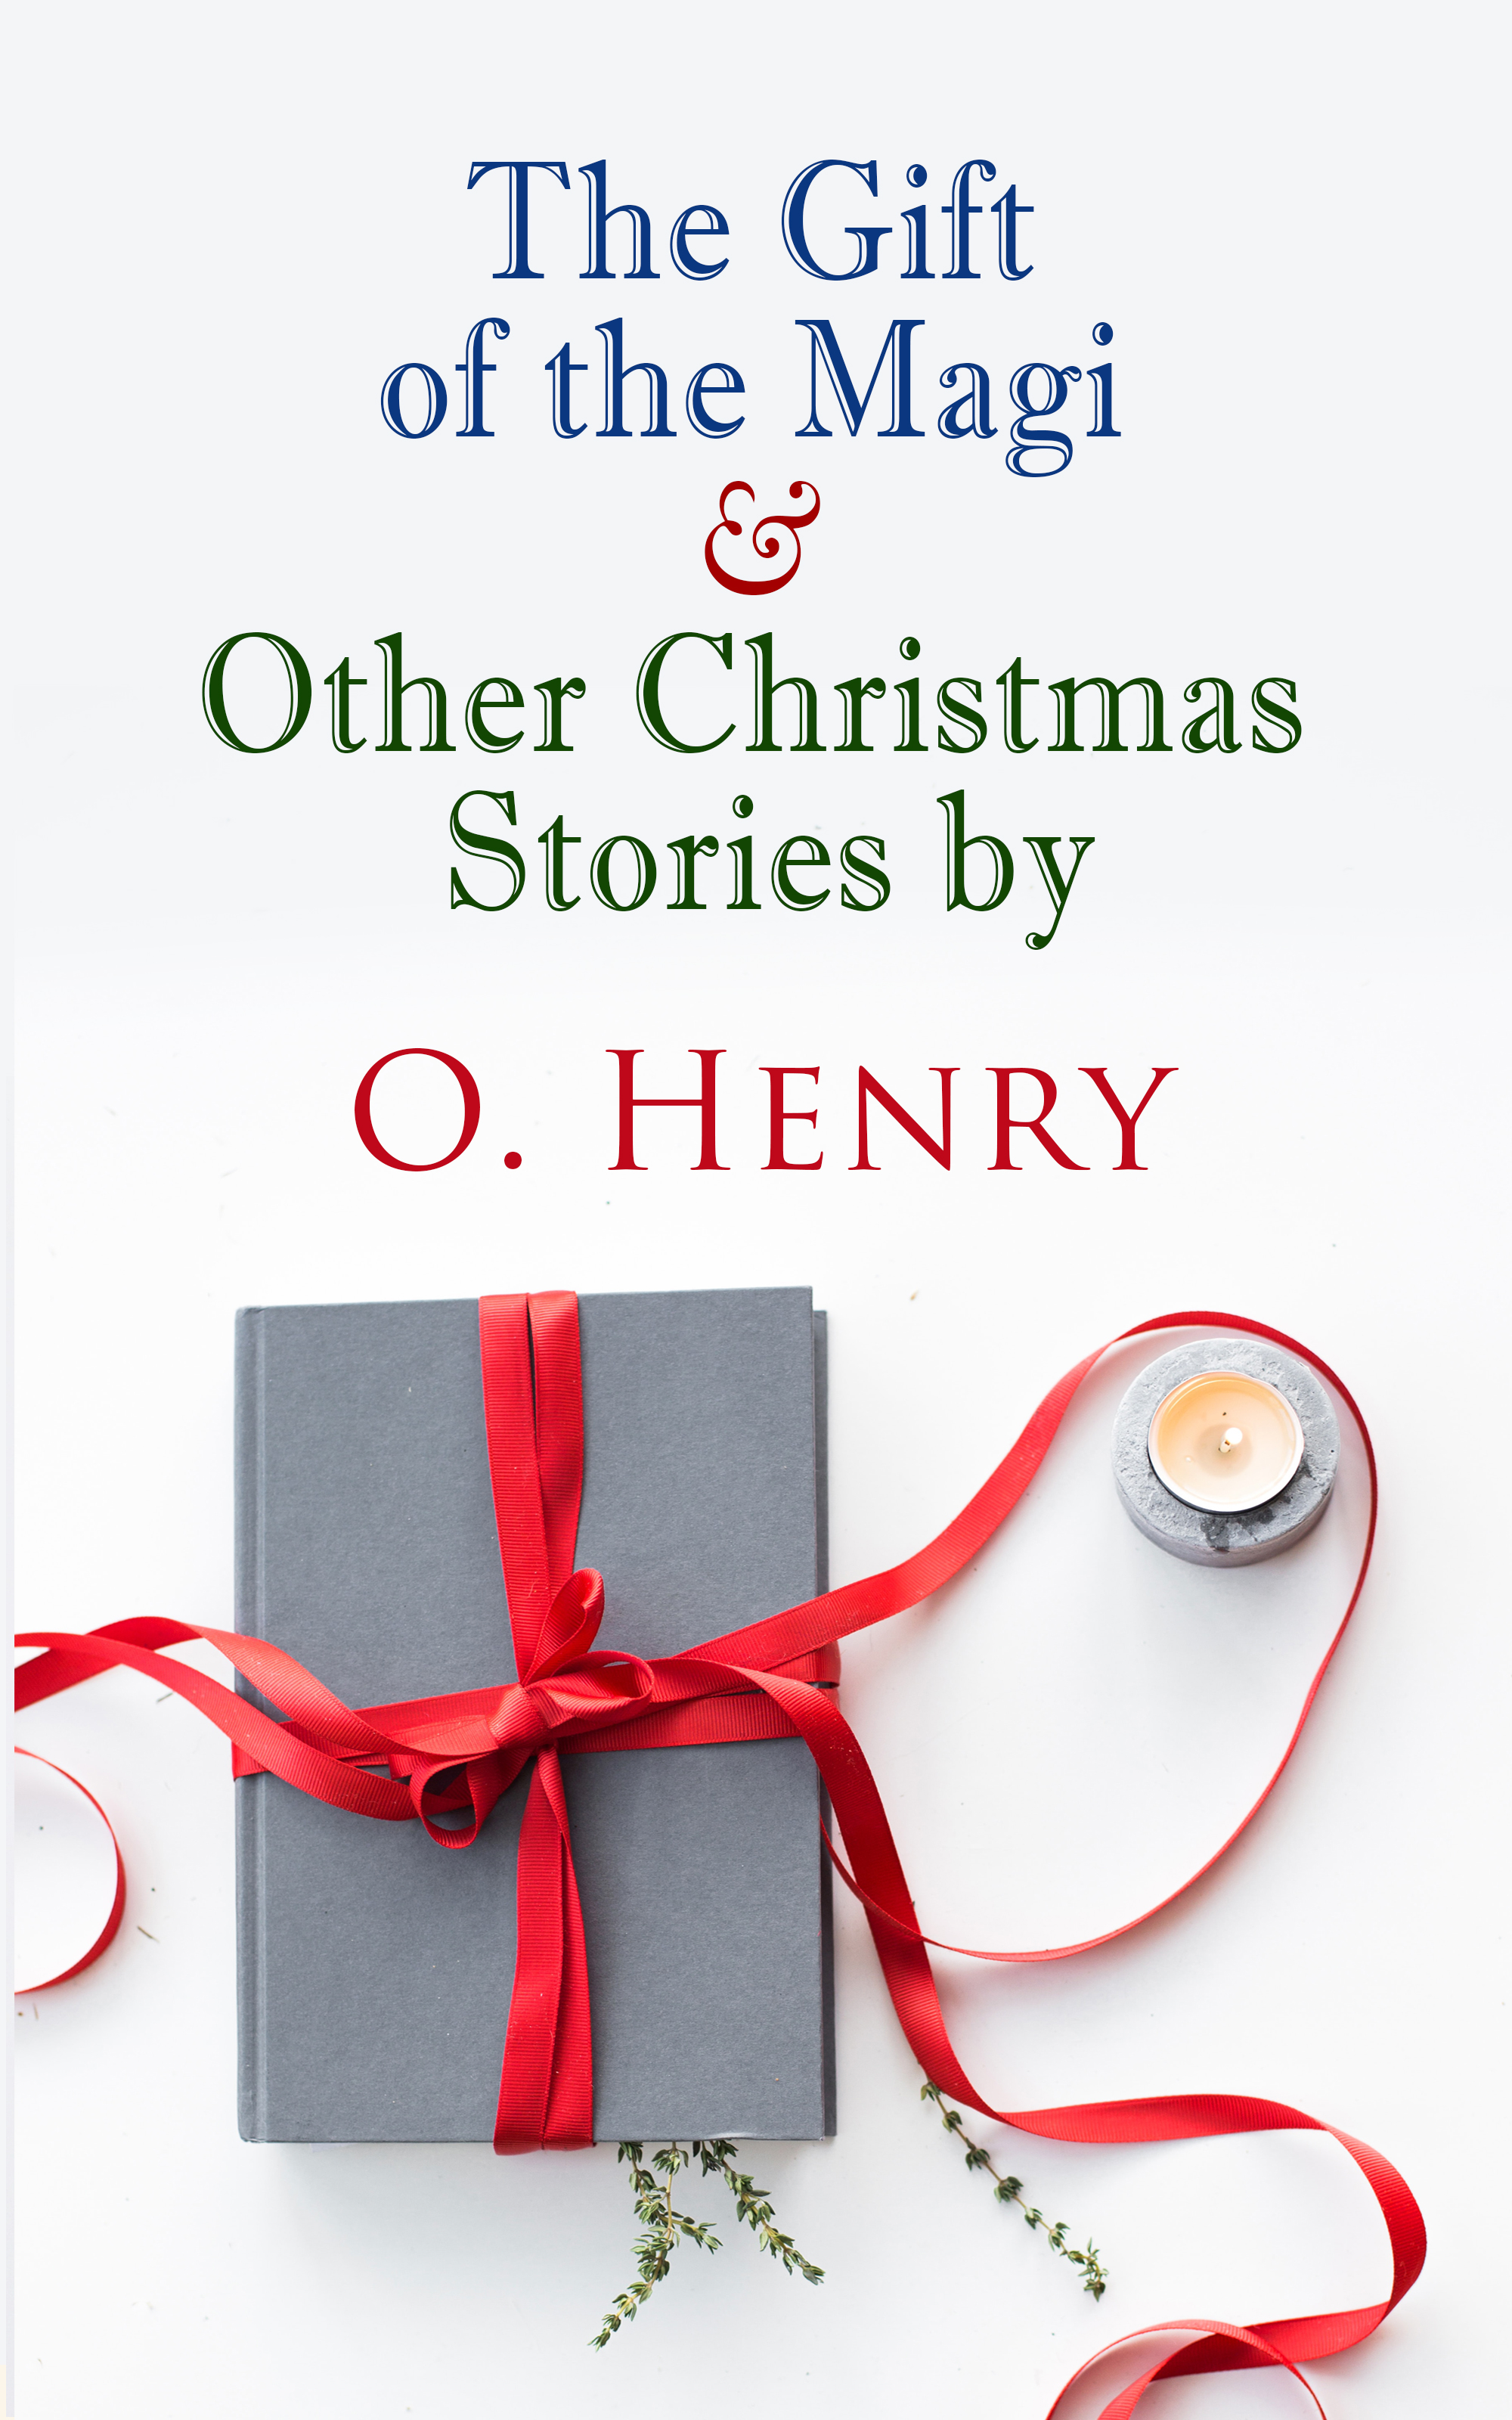 the gift of magi and other stories level 1 cd rom O. Henry The Gift of the Magi & Other Christmas Stories by O. Henry